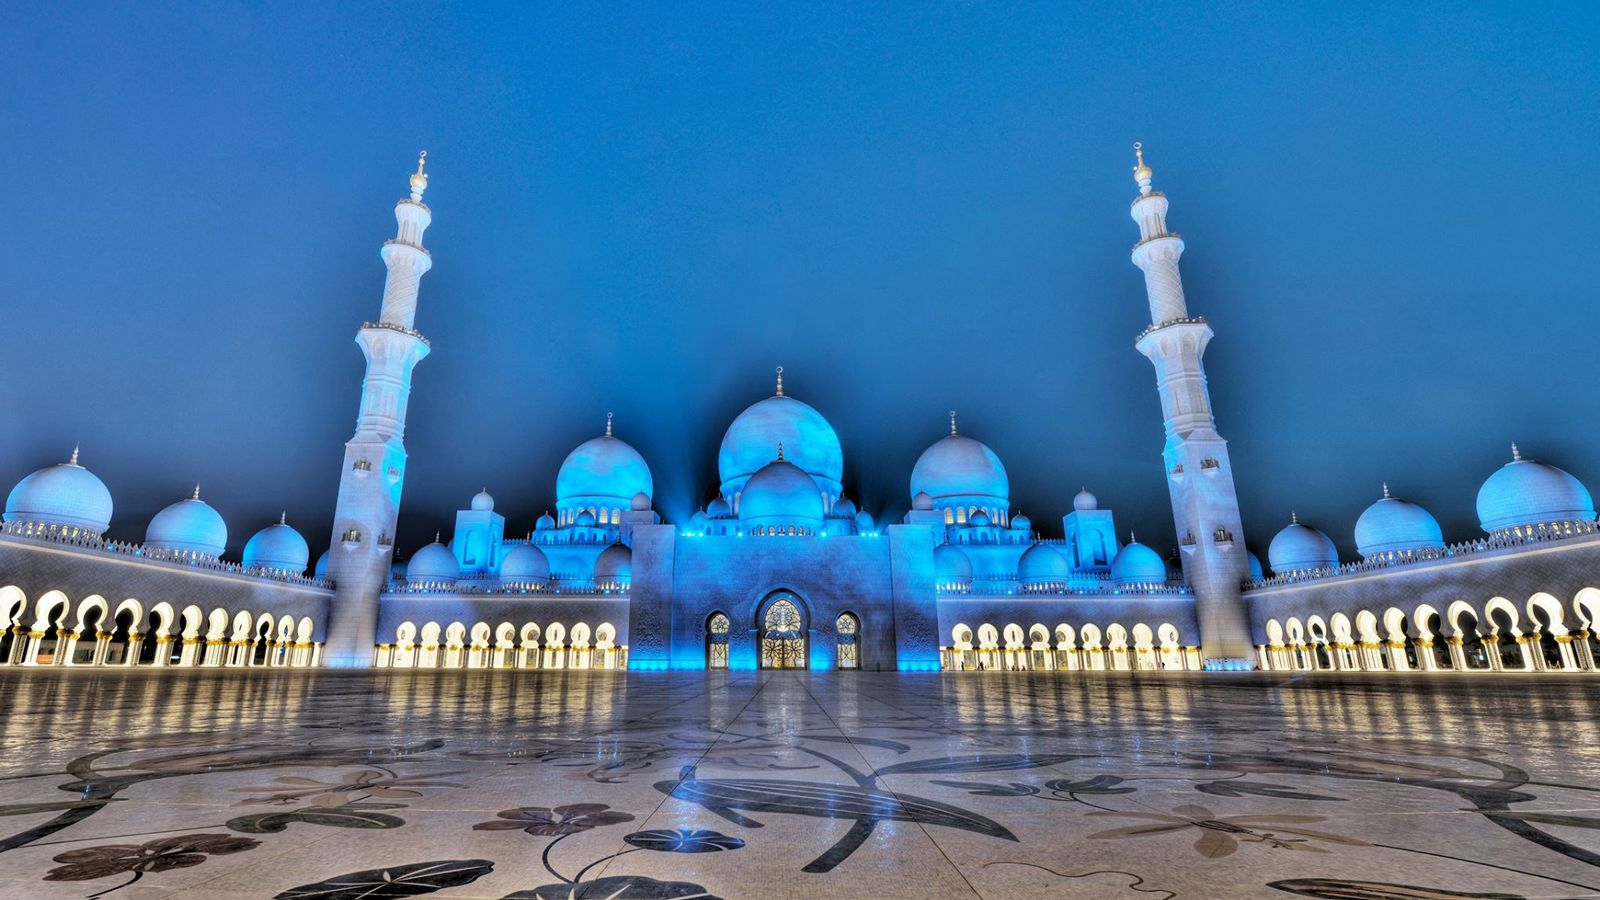 mosque beautifully lit during the evening in Abu Dhabi